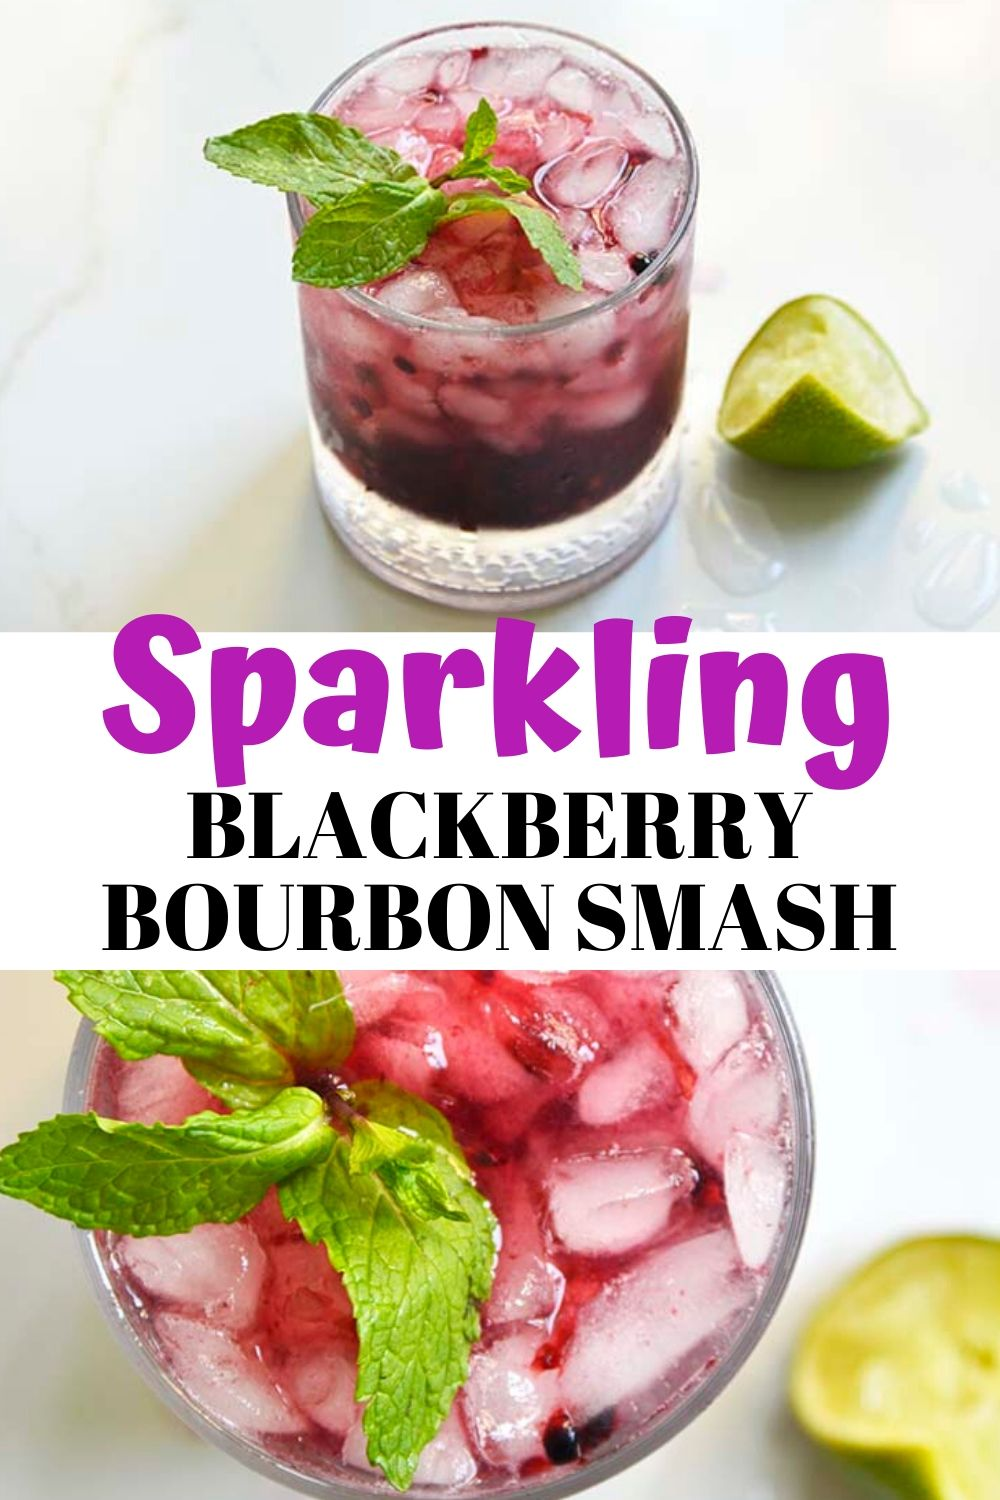 This Low Carb Sparkling Blackberry Bourbon Smash is a great spin on the classic cocktail! It contains deliciously sweet blackberries which have been muddled to release their sweet flavors, lime juice for a little citrusy vibe and fresh mint for a little flare! This drink is made in minutes and is a great way to relax after a long week at work! #lowcarbcocktail #ketococktail